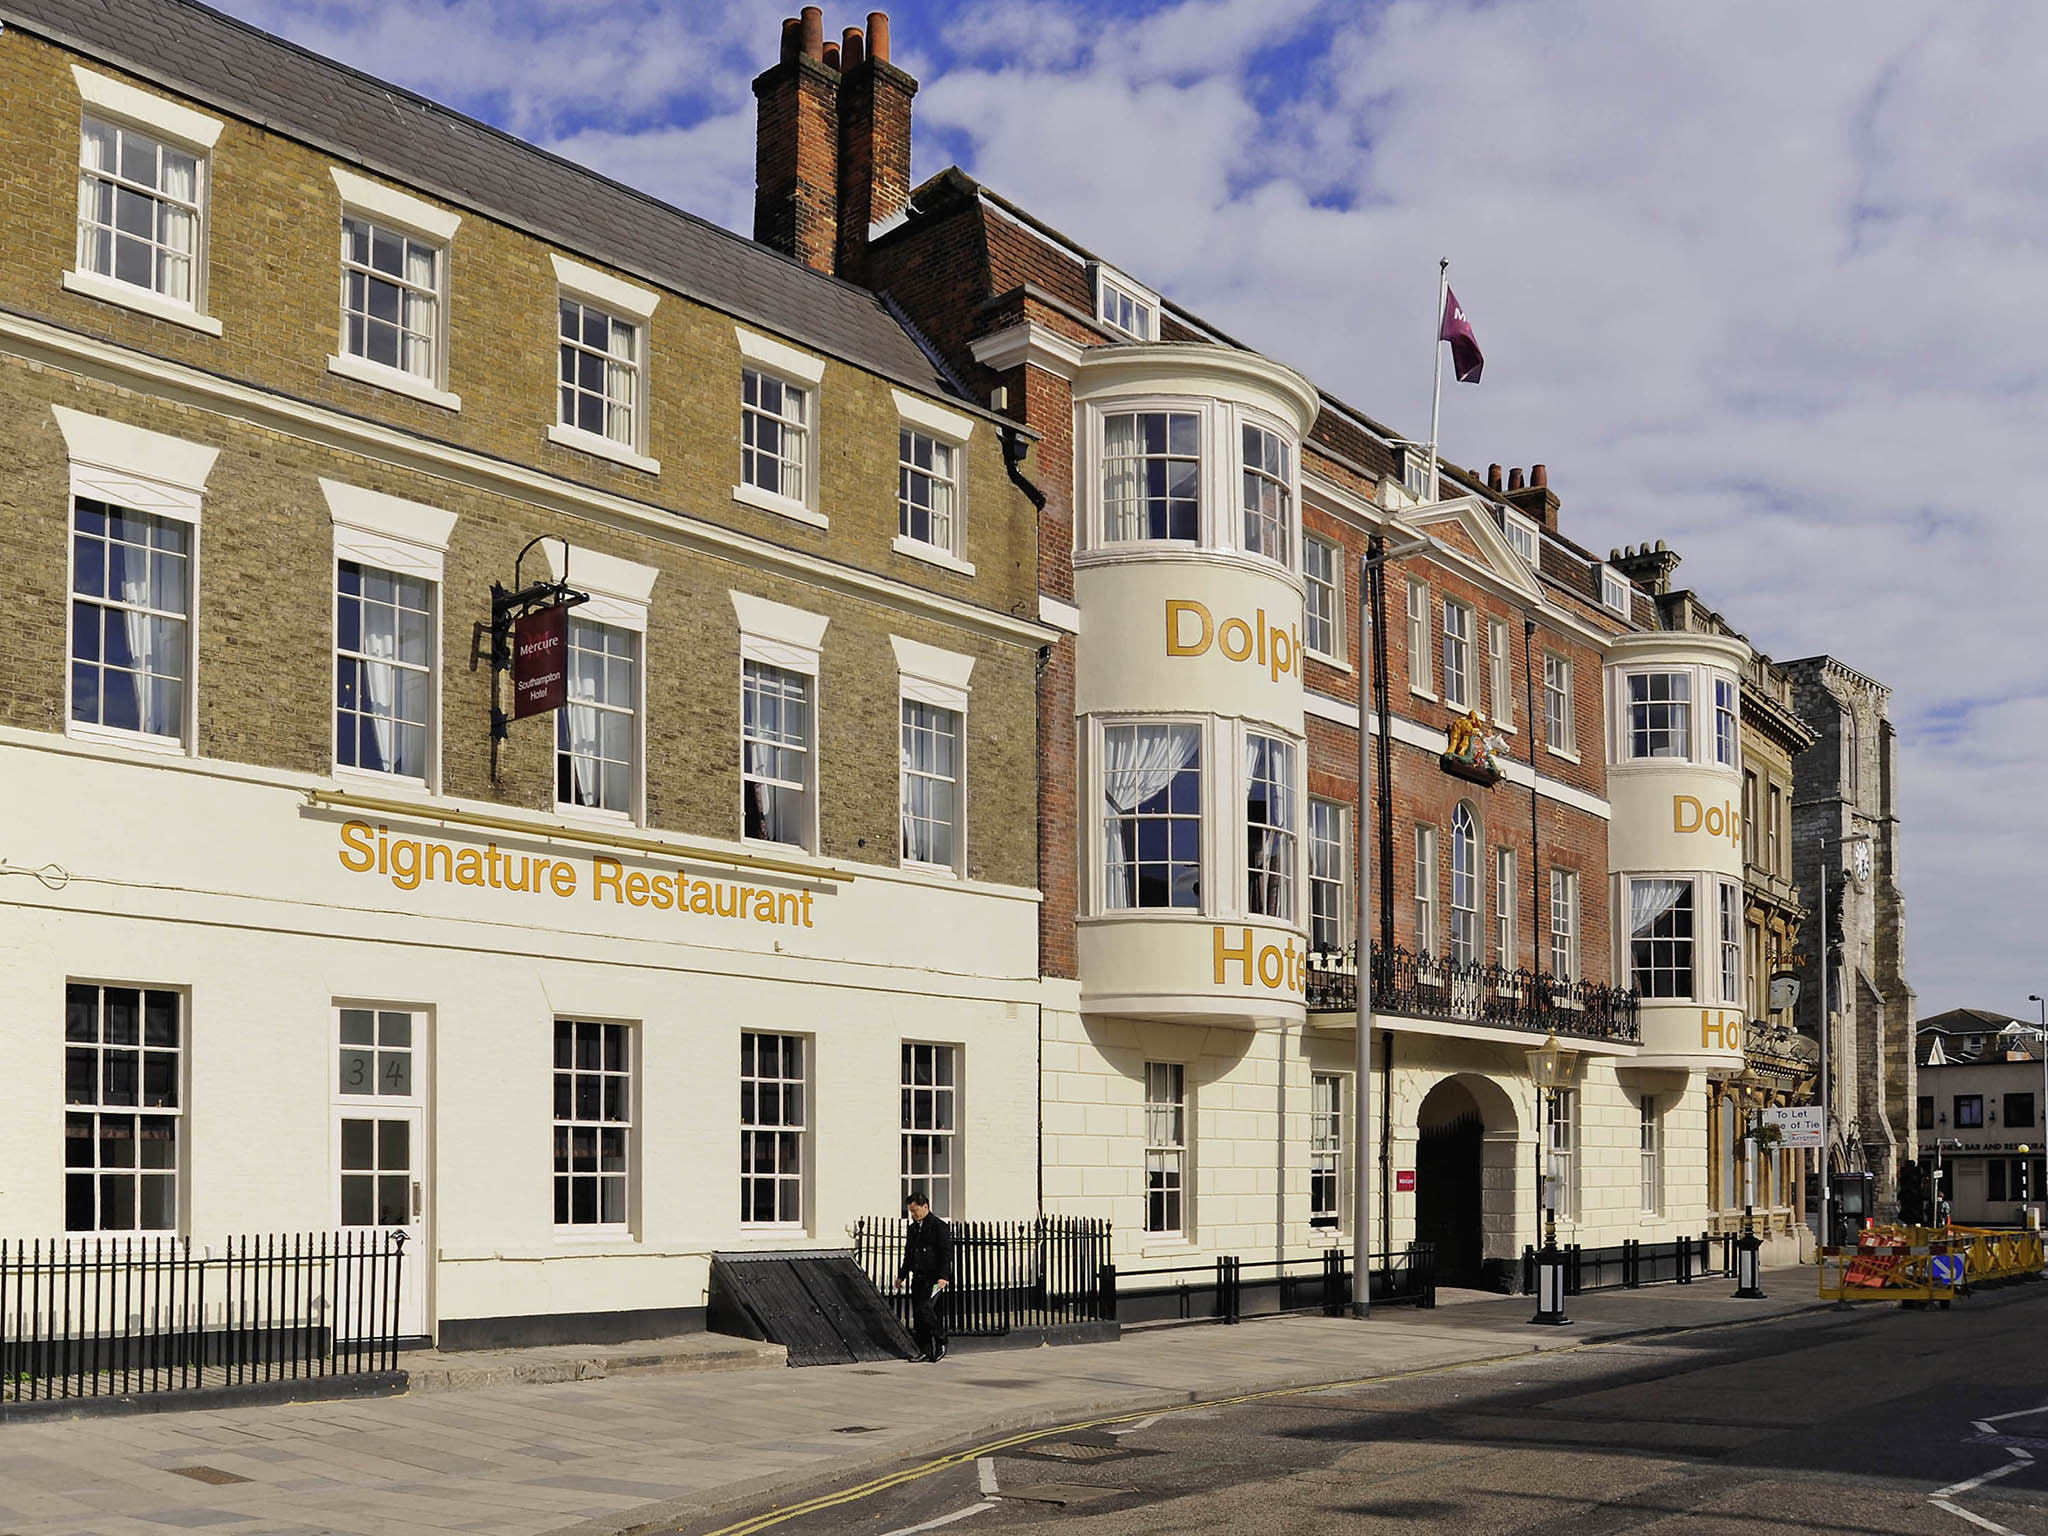 Hotel – Mercure Southampton Centre Dolphin Hotel